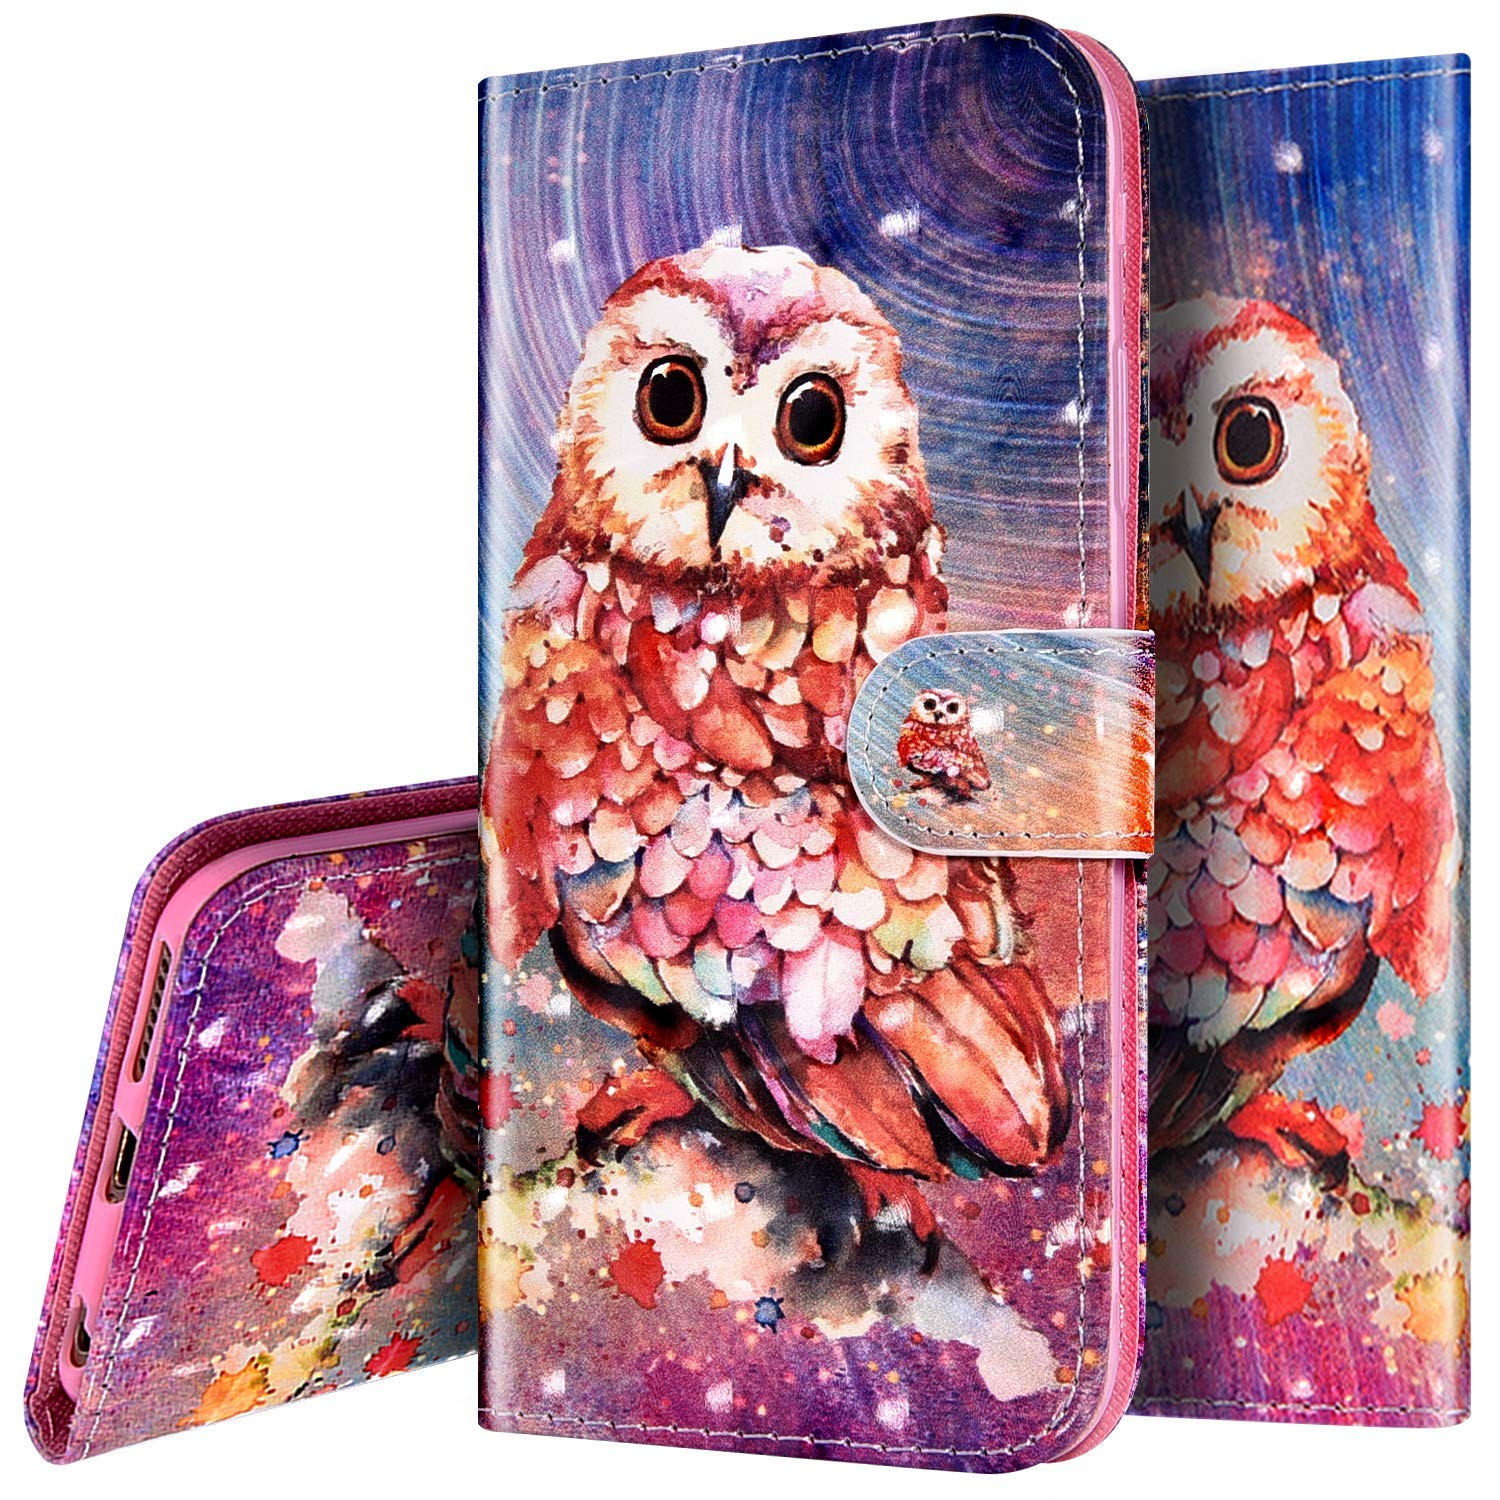 PHEZEN Case for Moto G6 Wallet Case,3D Bling PU Leather Folio Flip Case Full Body Protective Phone Case Cover with Kickstand Credit Card Wrist Strap for Moto G6 - Owl by PHEZEN